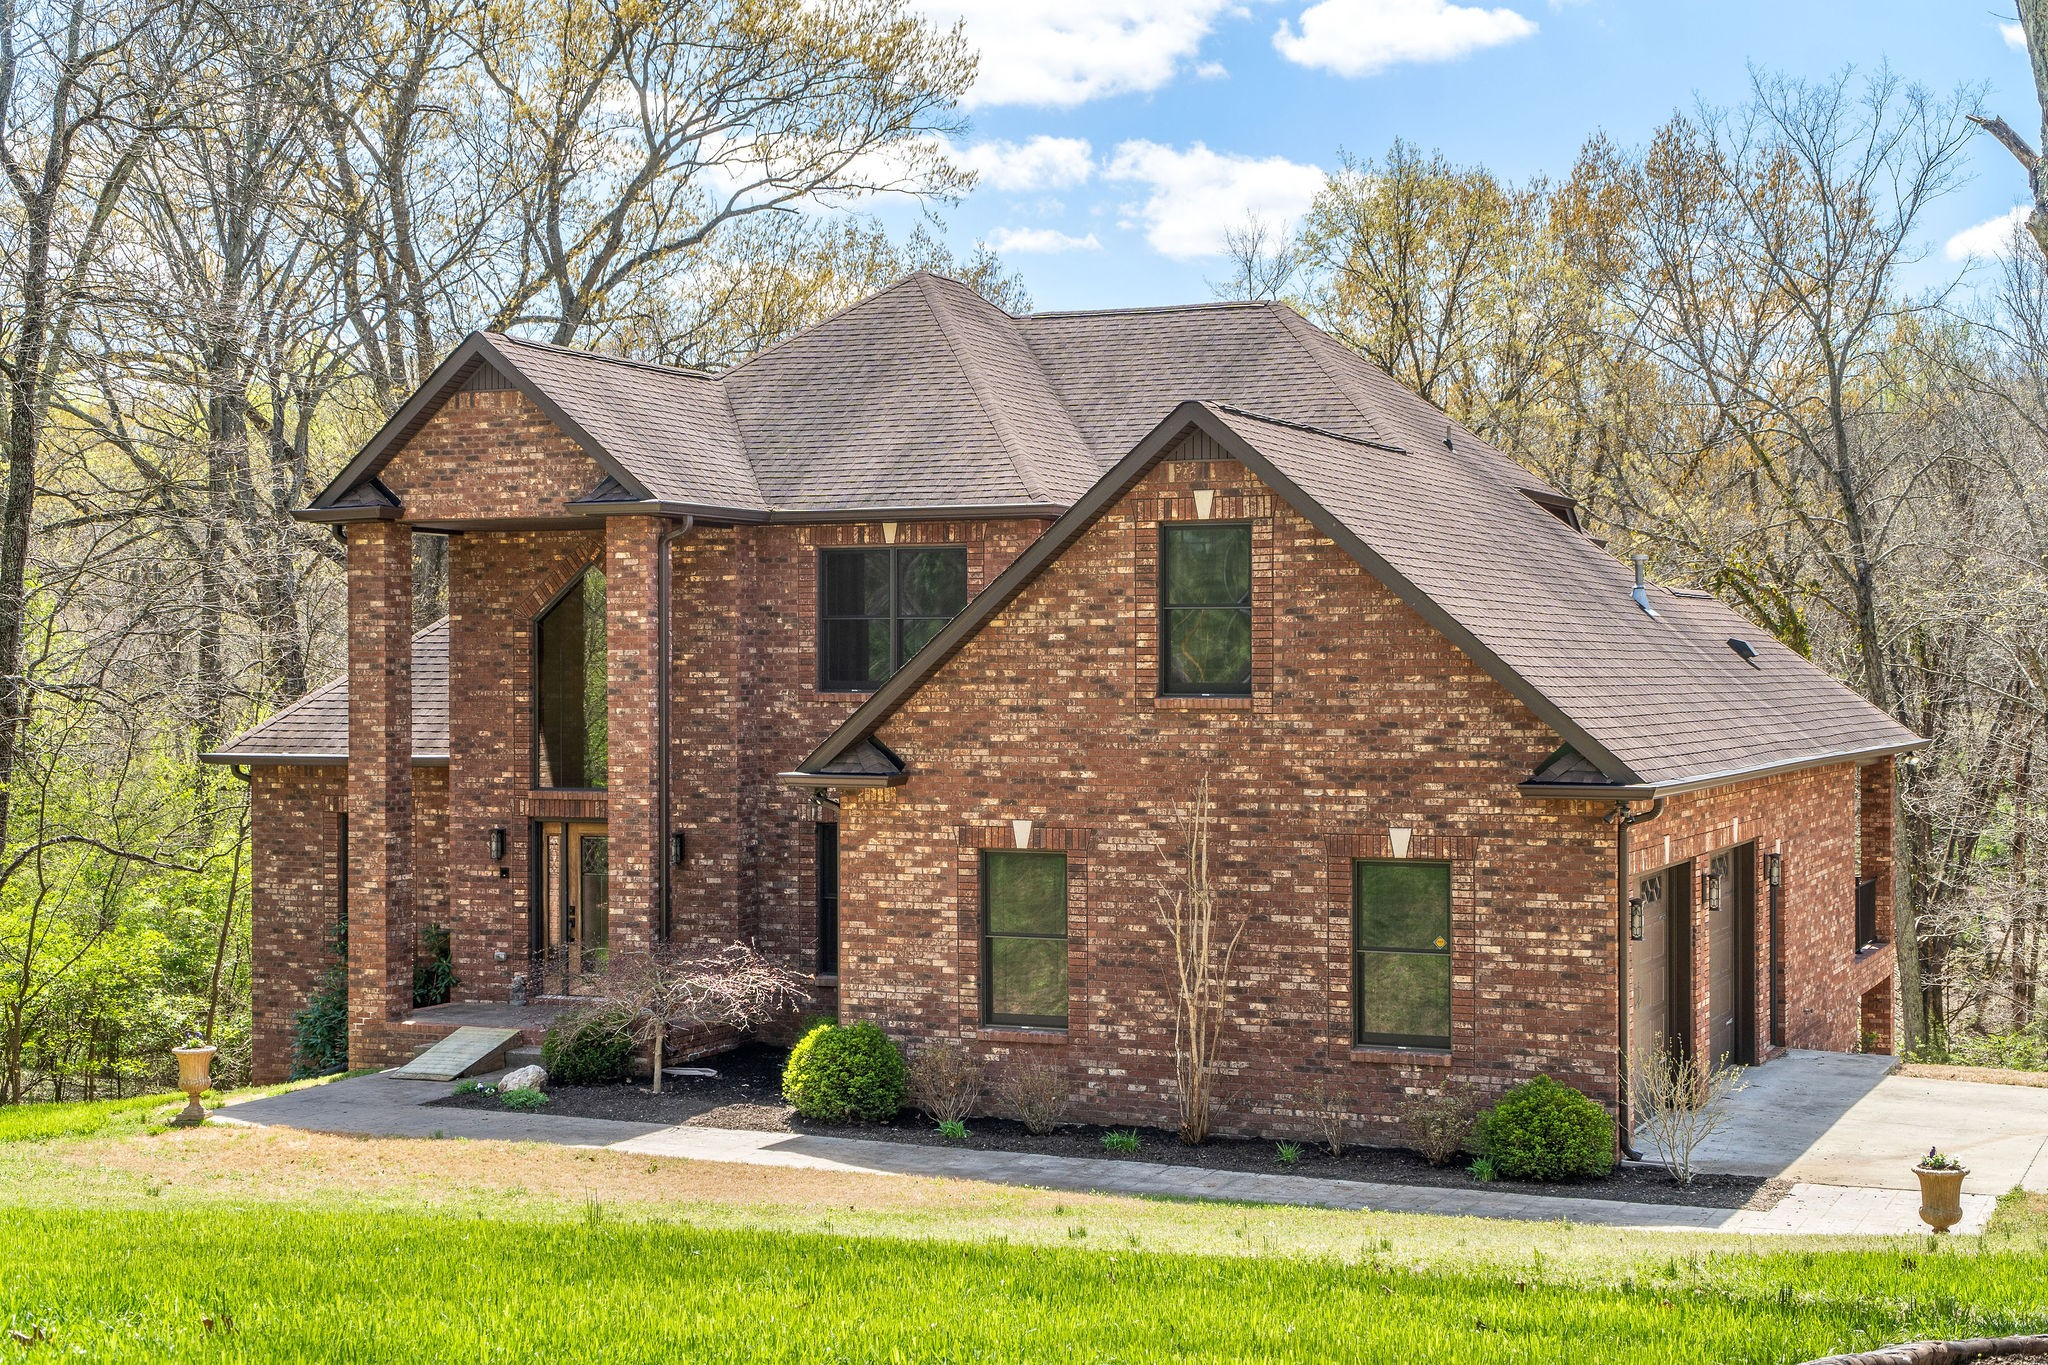 194 Ussery Rd Property Photo - Clarksville, TN real estate listing